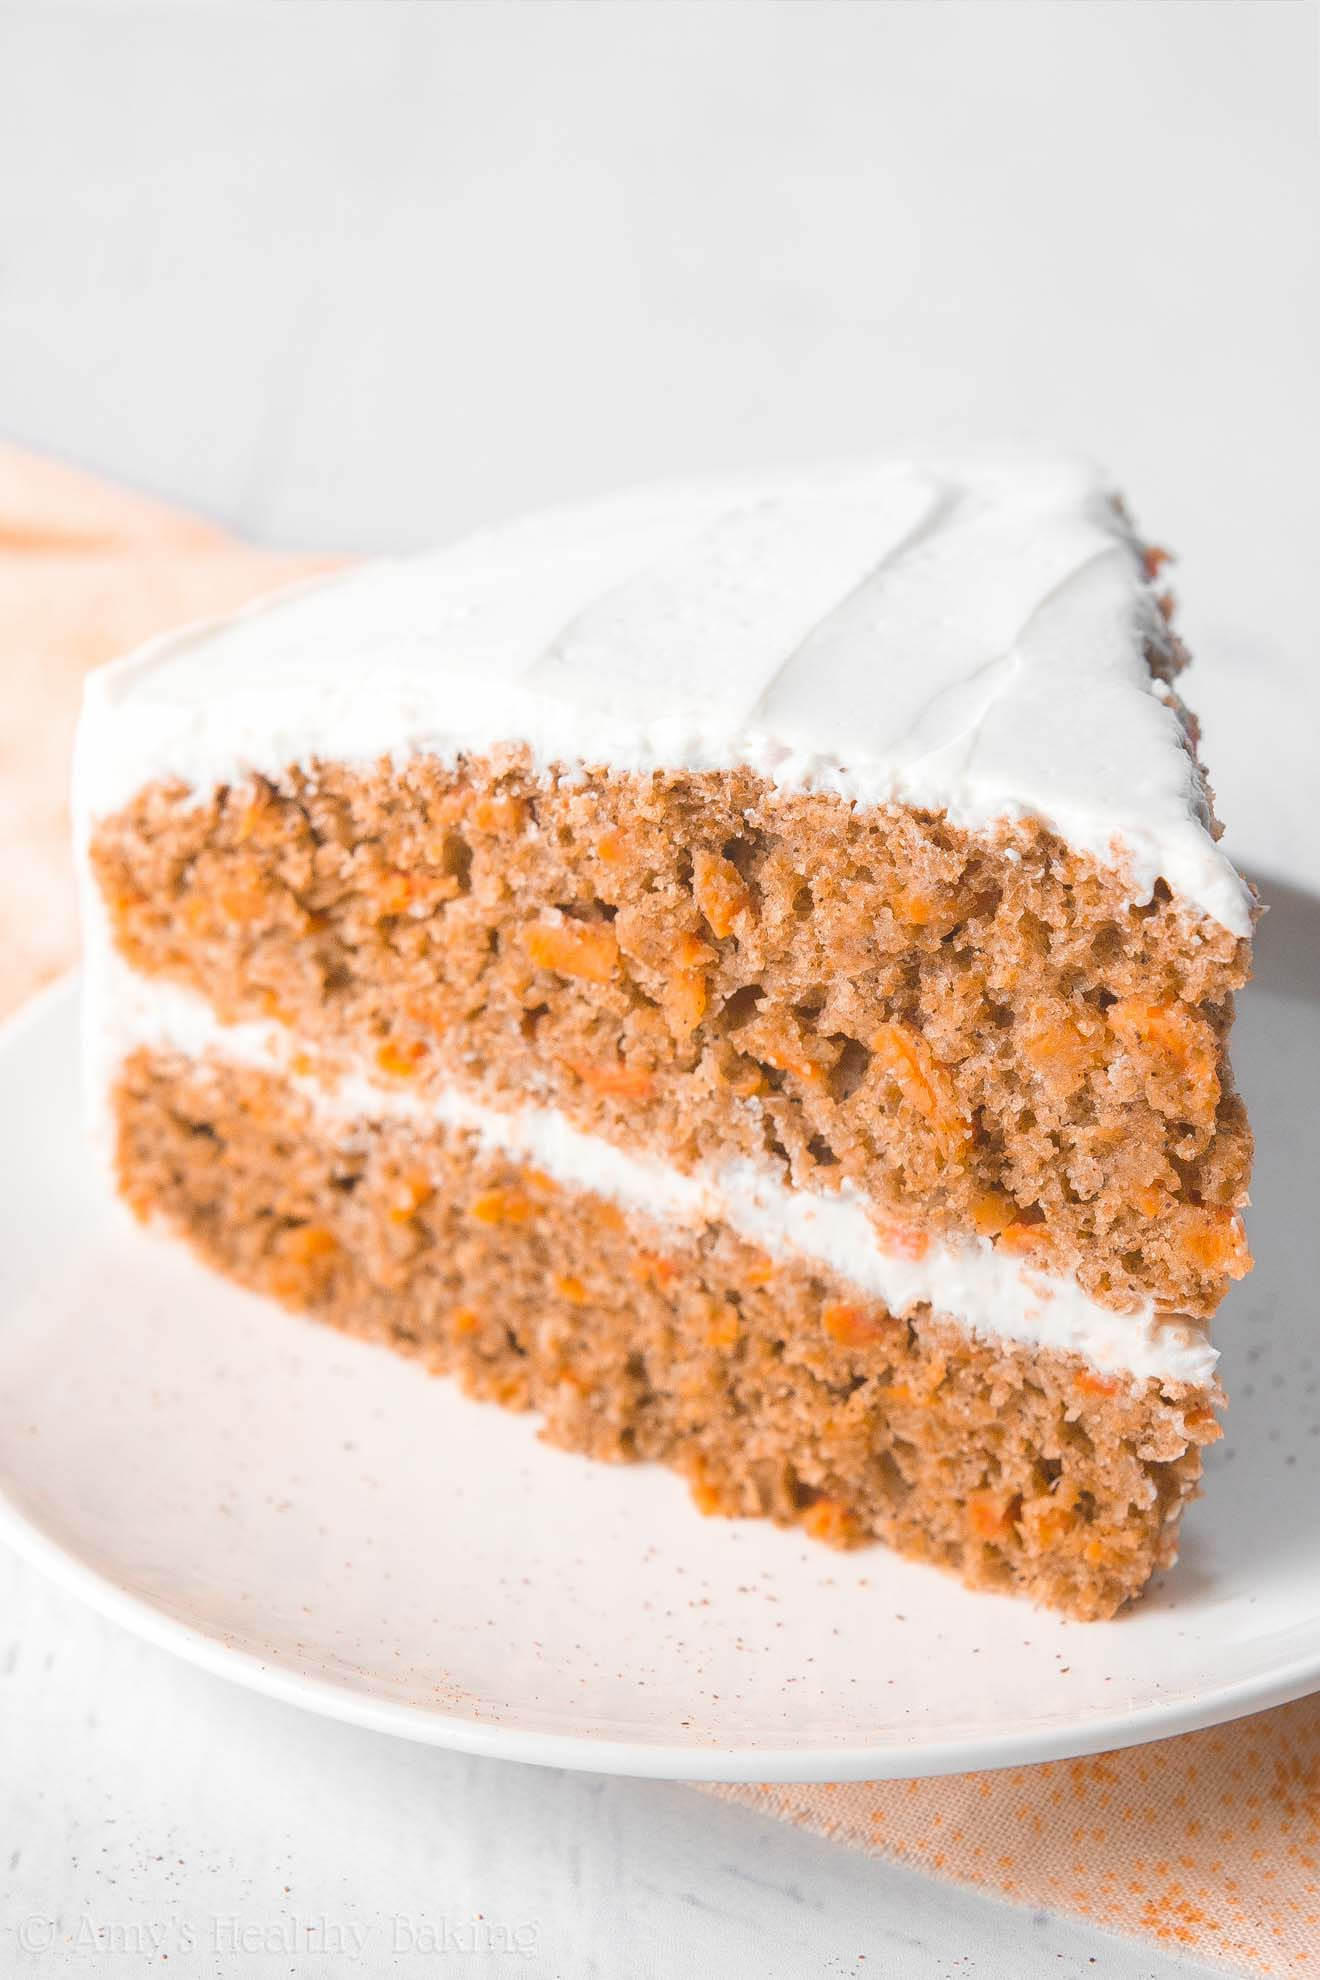 Healthy Cake Recipes  The Ultimate Healthy Carrot Cake